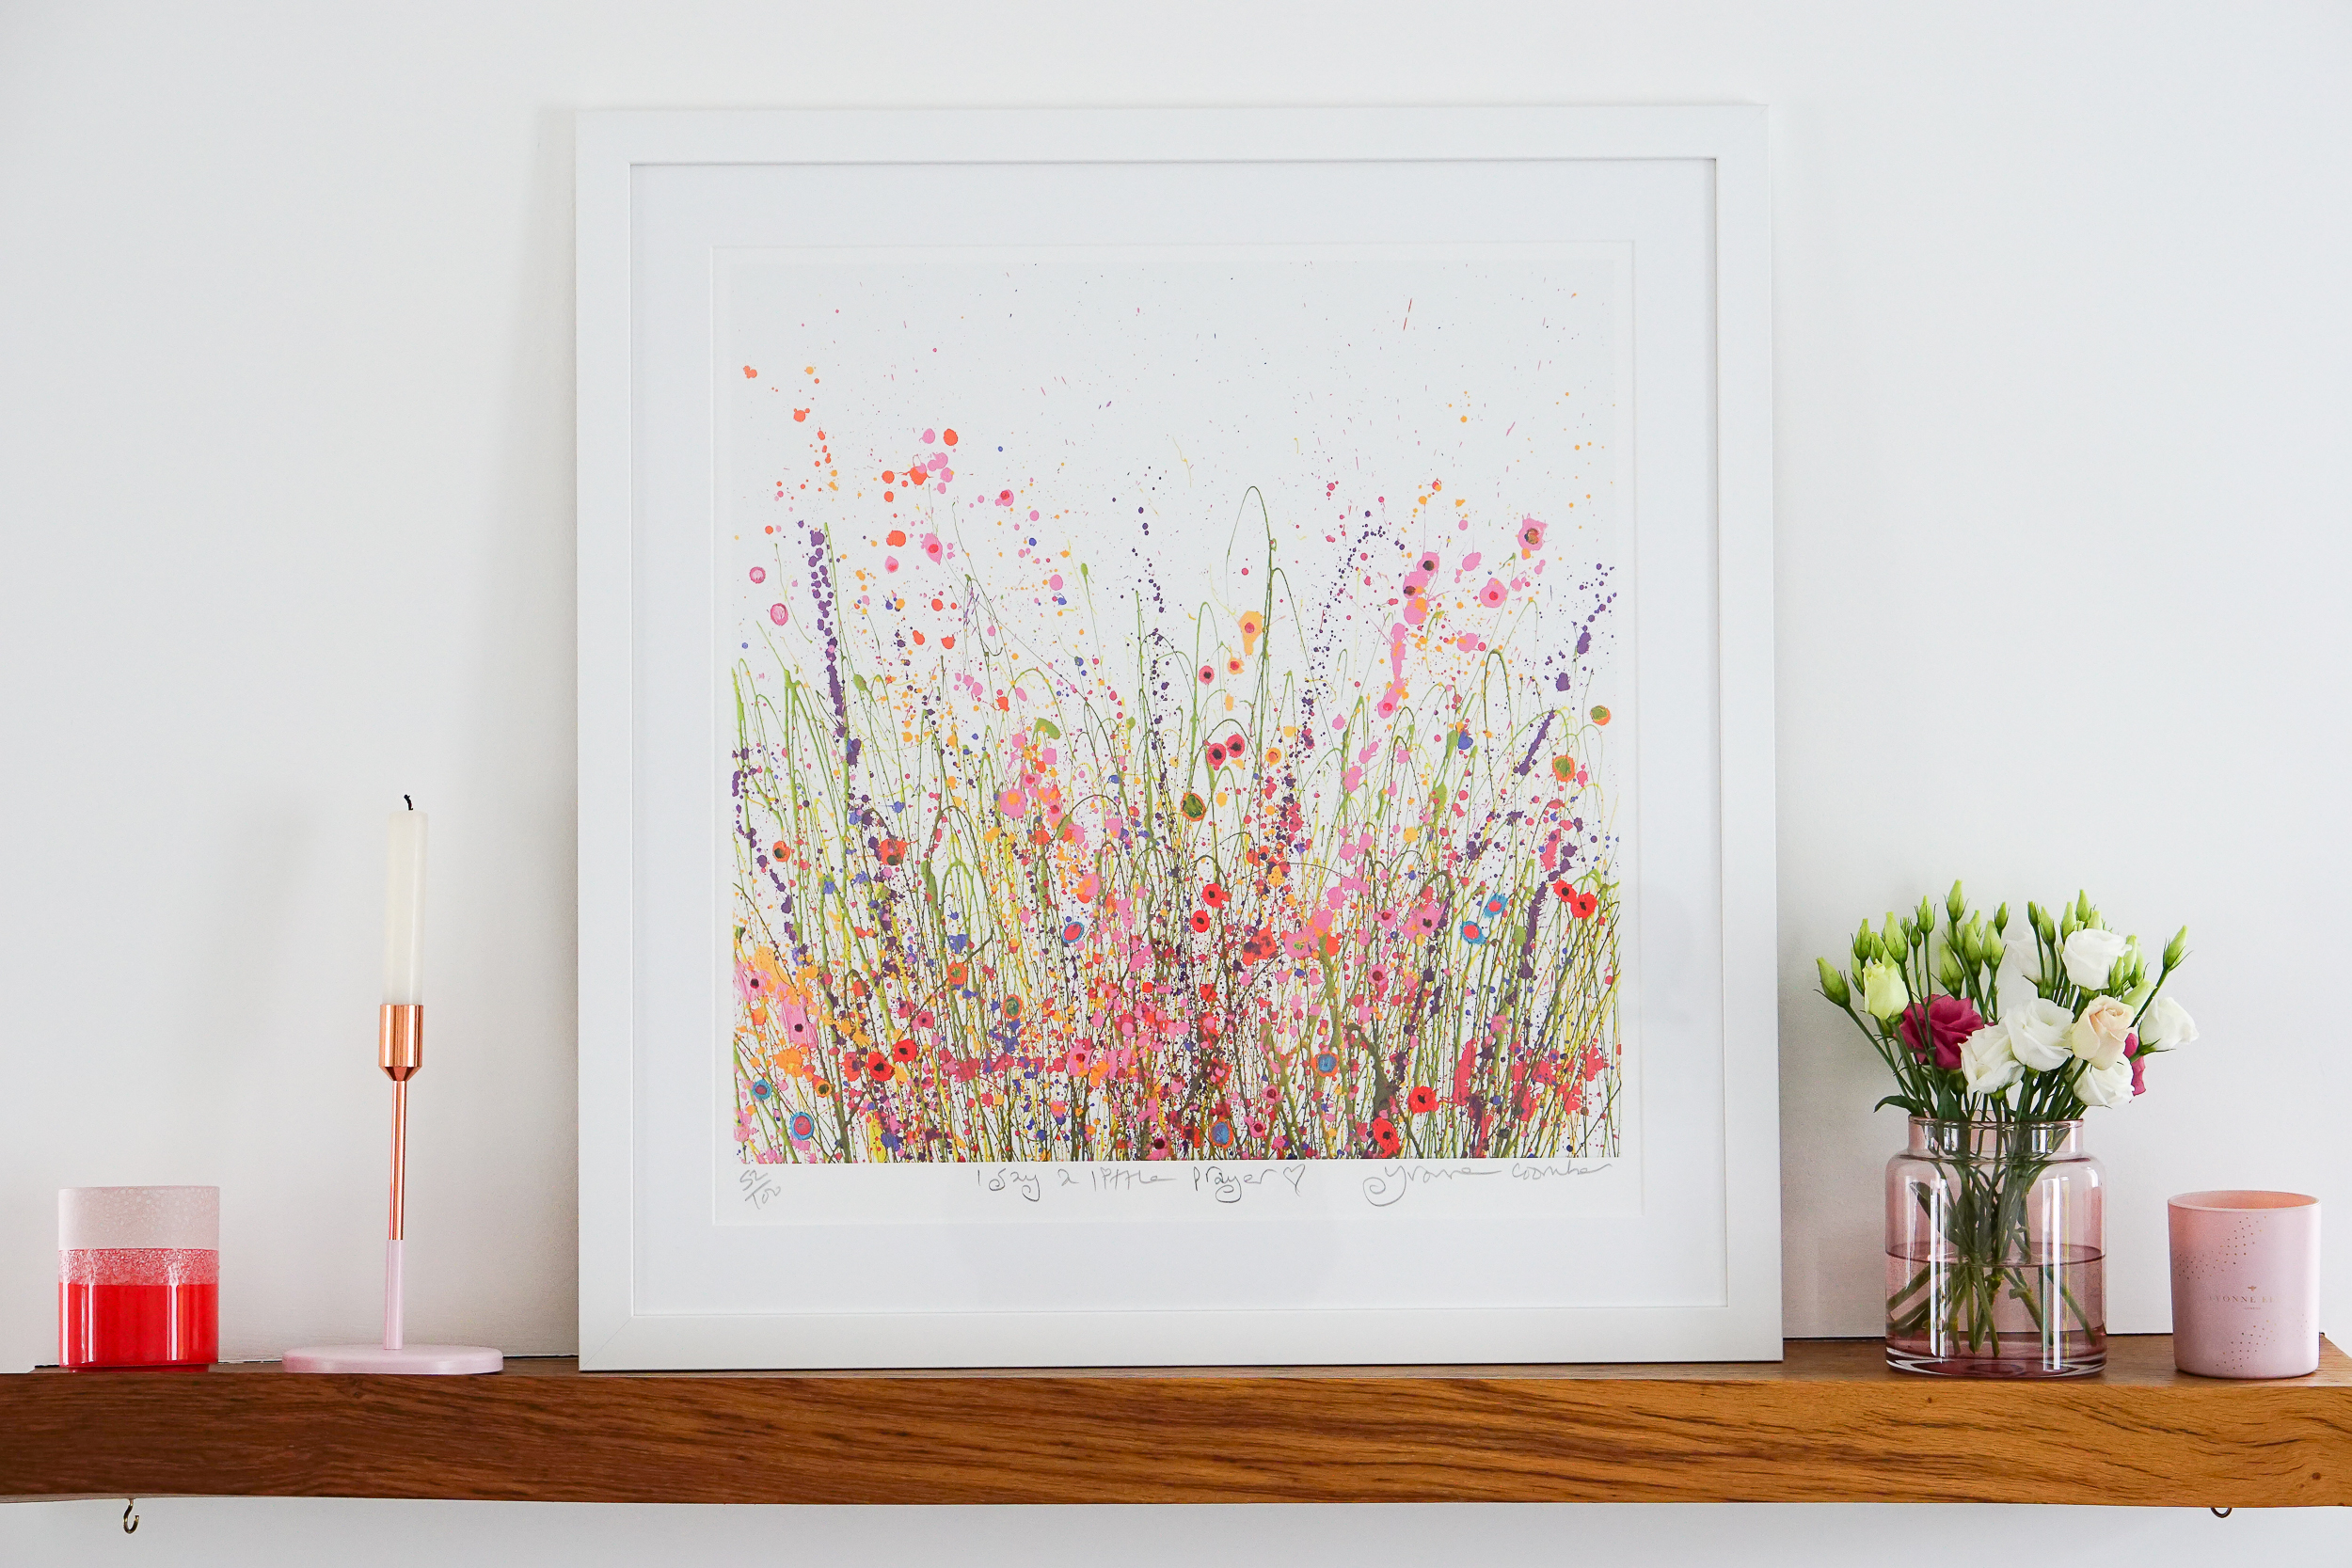 Infused with colour: meet Yvonne Coomber